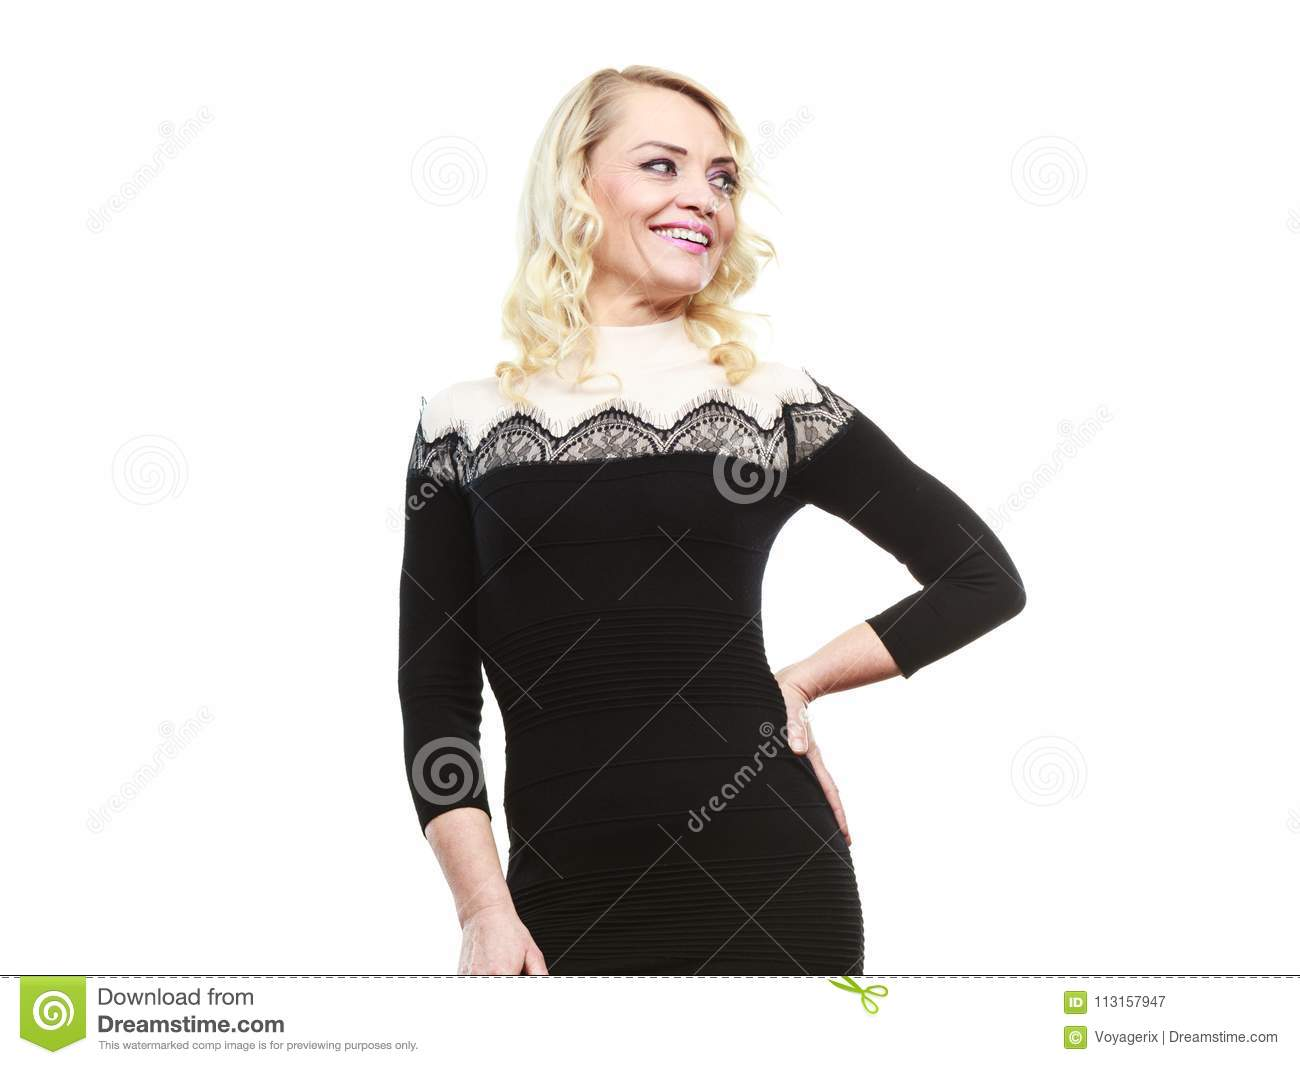 Mid Aged Woman In Stylish Black Dress Stock Image Image of slim